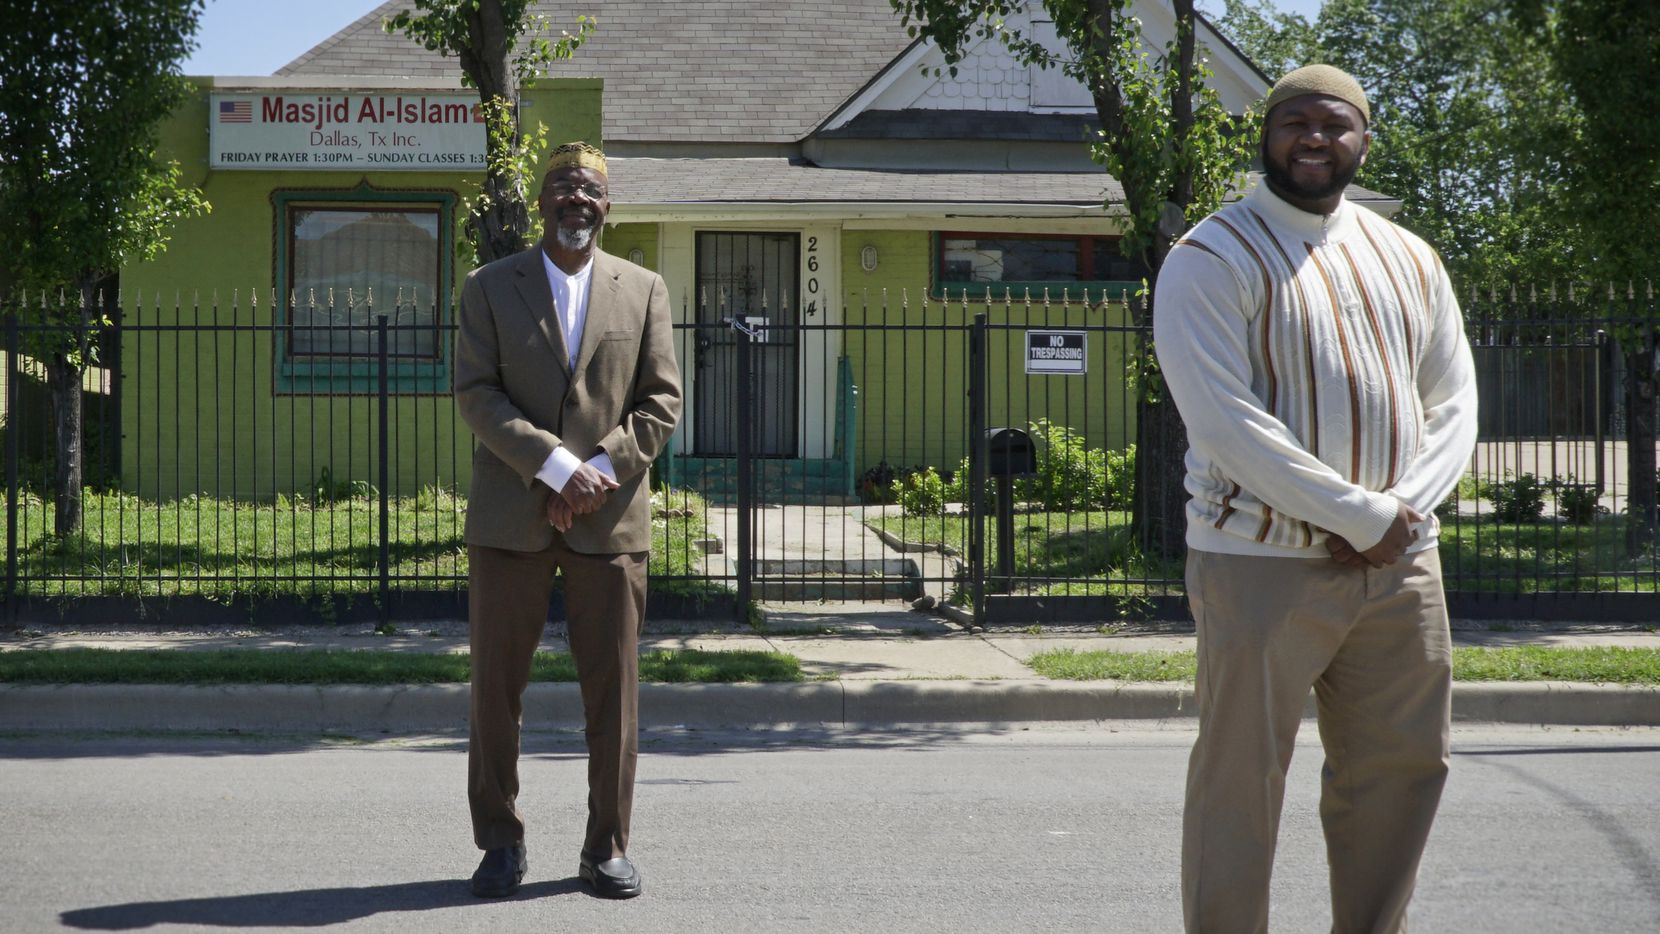 Imam Khalid Shaheed (left) stands outside Masjid Al-Islam in Dallas with Imam-elect Muhammad Abdul-Jami.